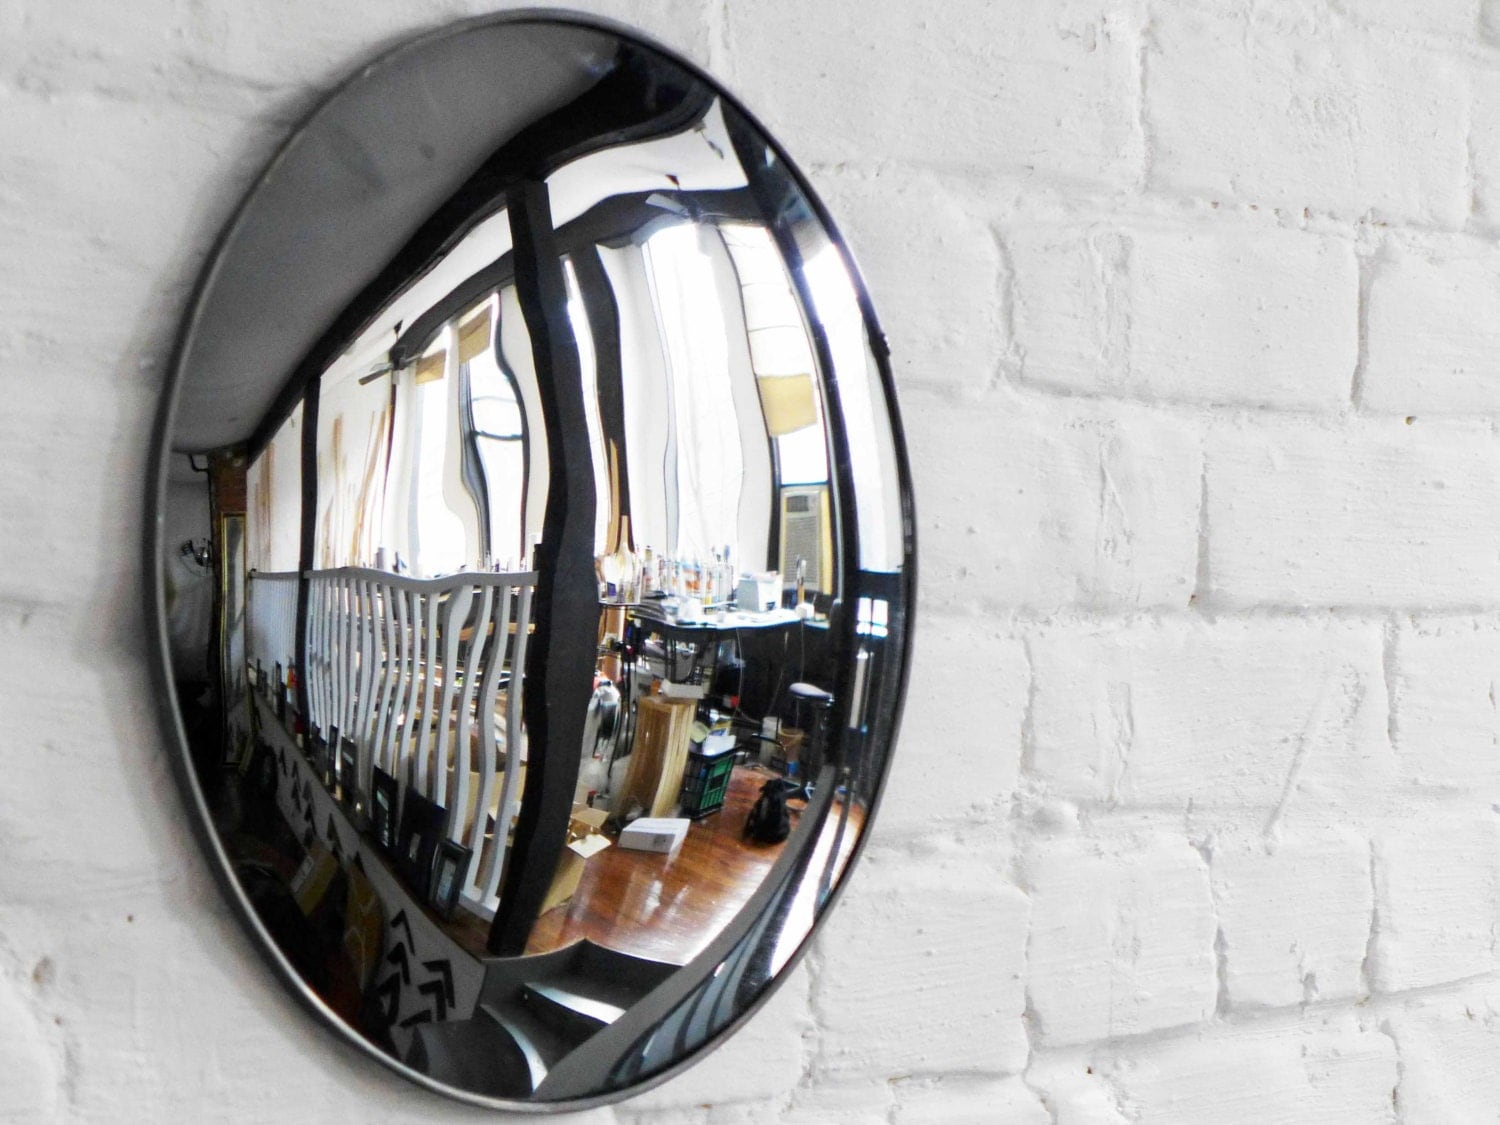 round convex mirror 12 1 2 diameter. Black Bedroom Furniture Sets. Home Design Ideas